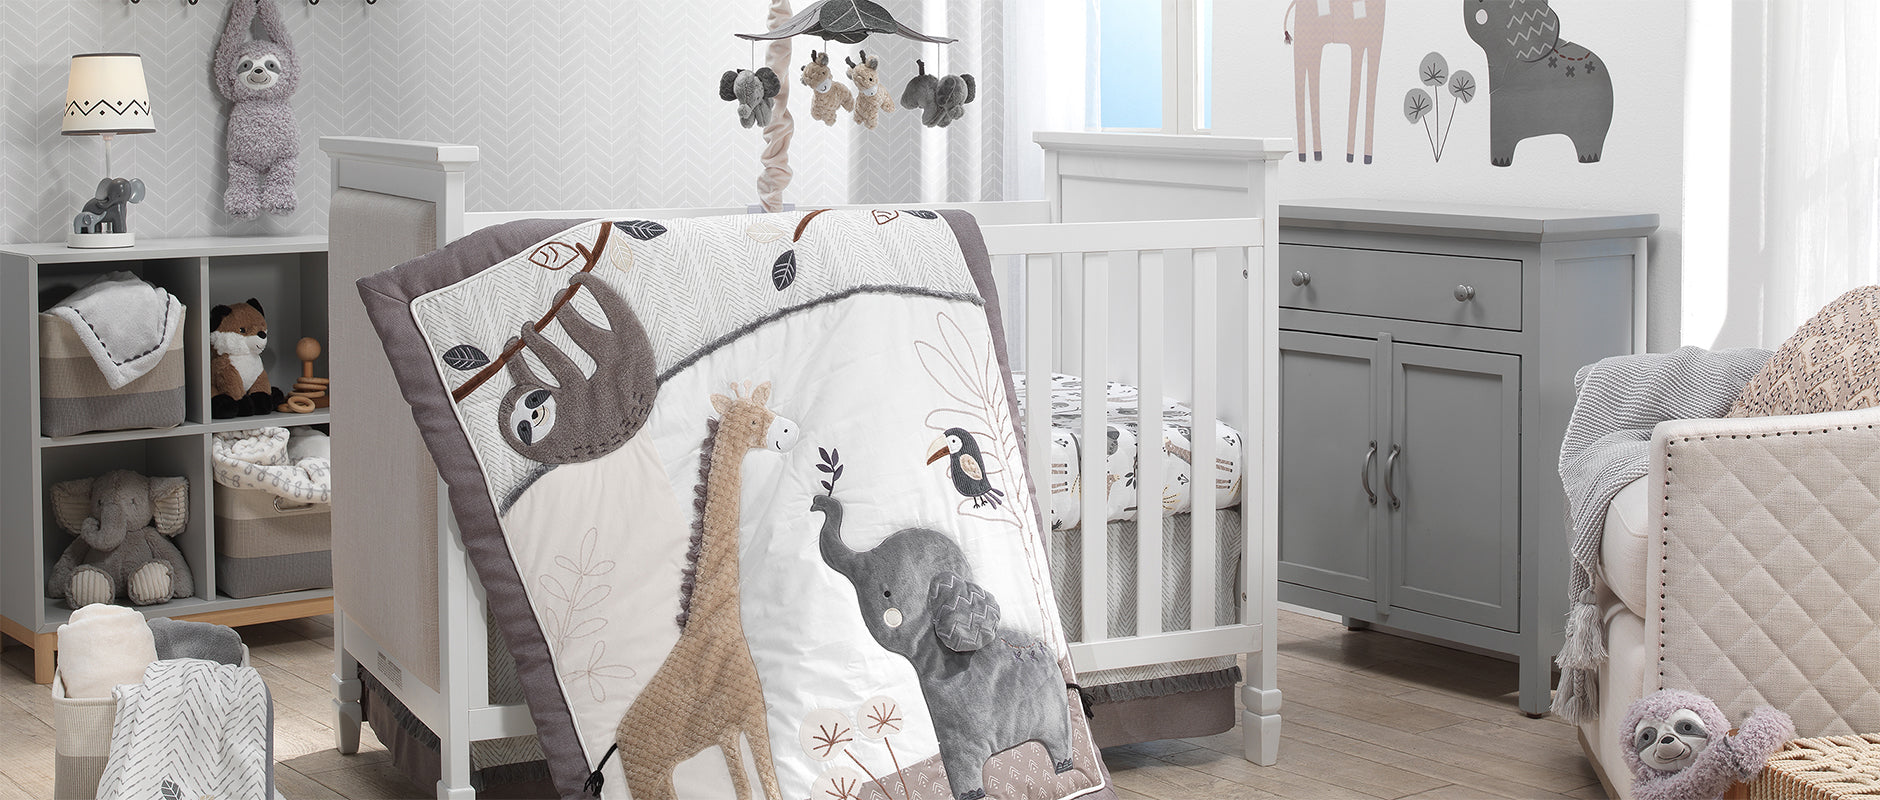 Baby Jungle Crib Bedding Baby Nursery Collection